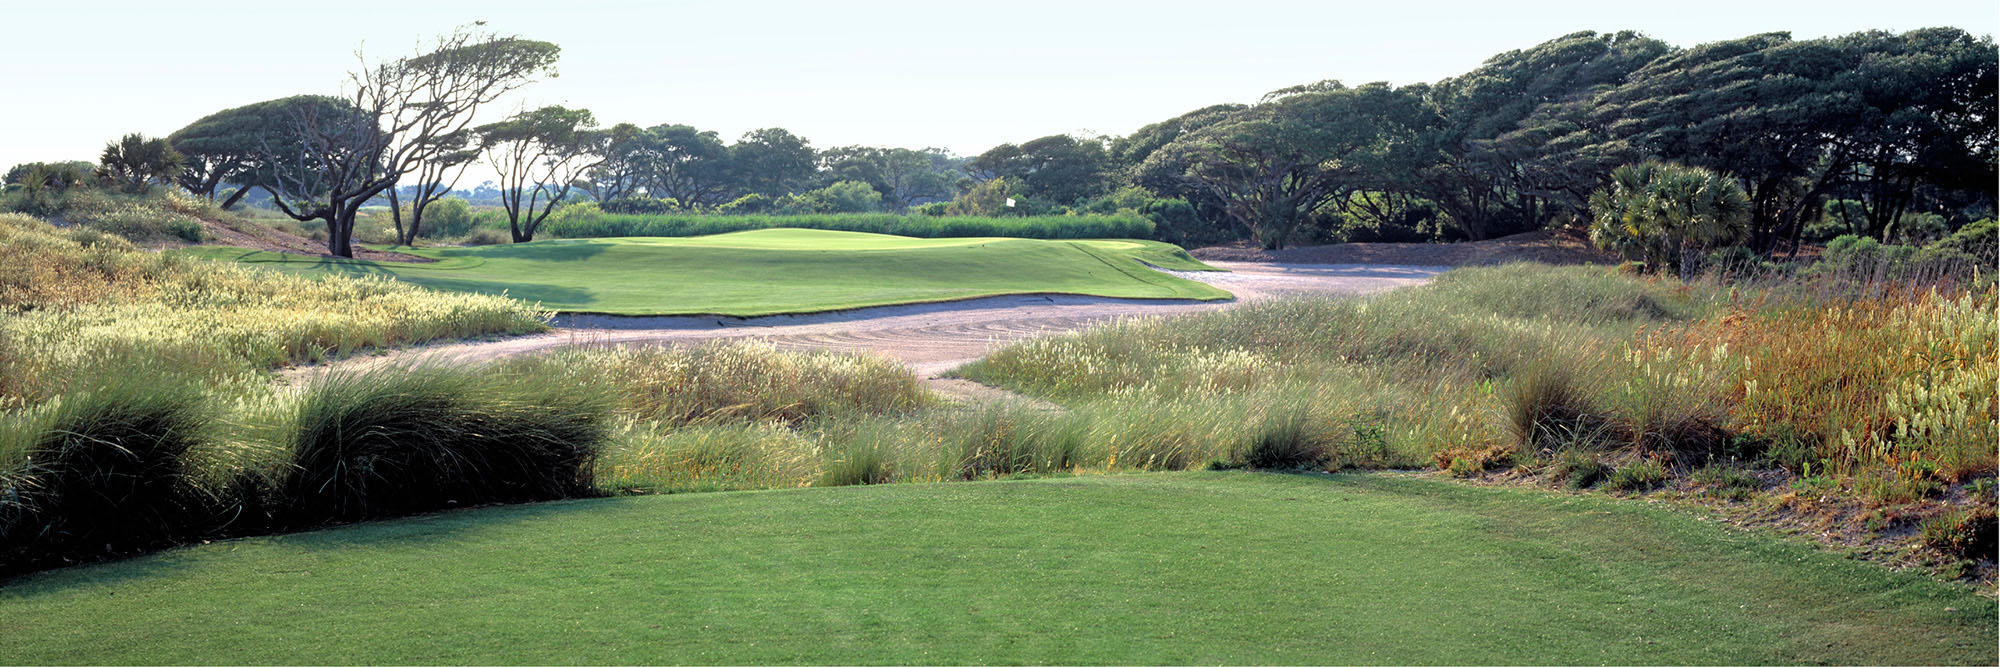 Golf Course Image - Kiawah Ocean Course No. 8